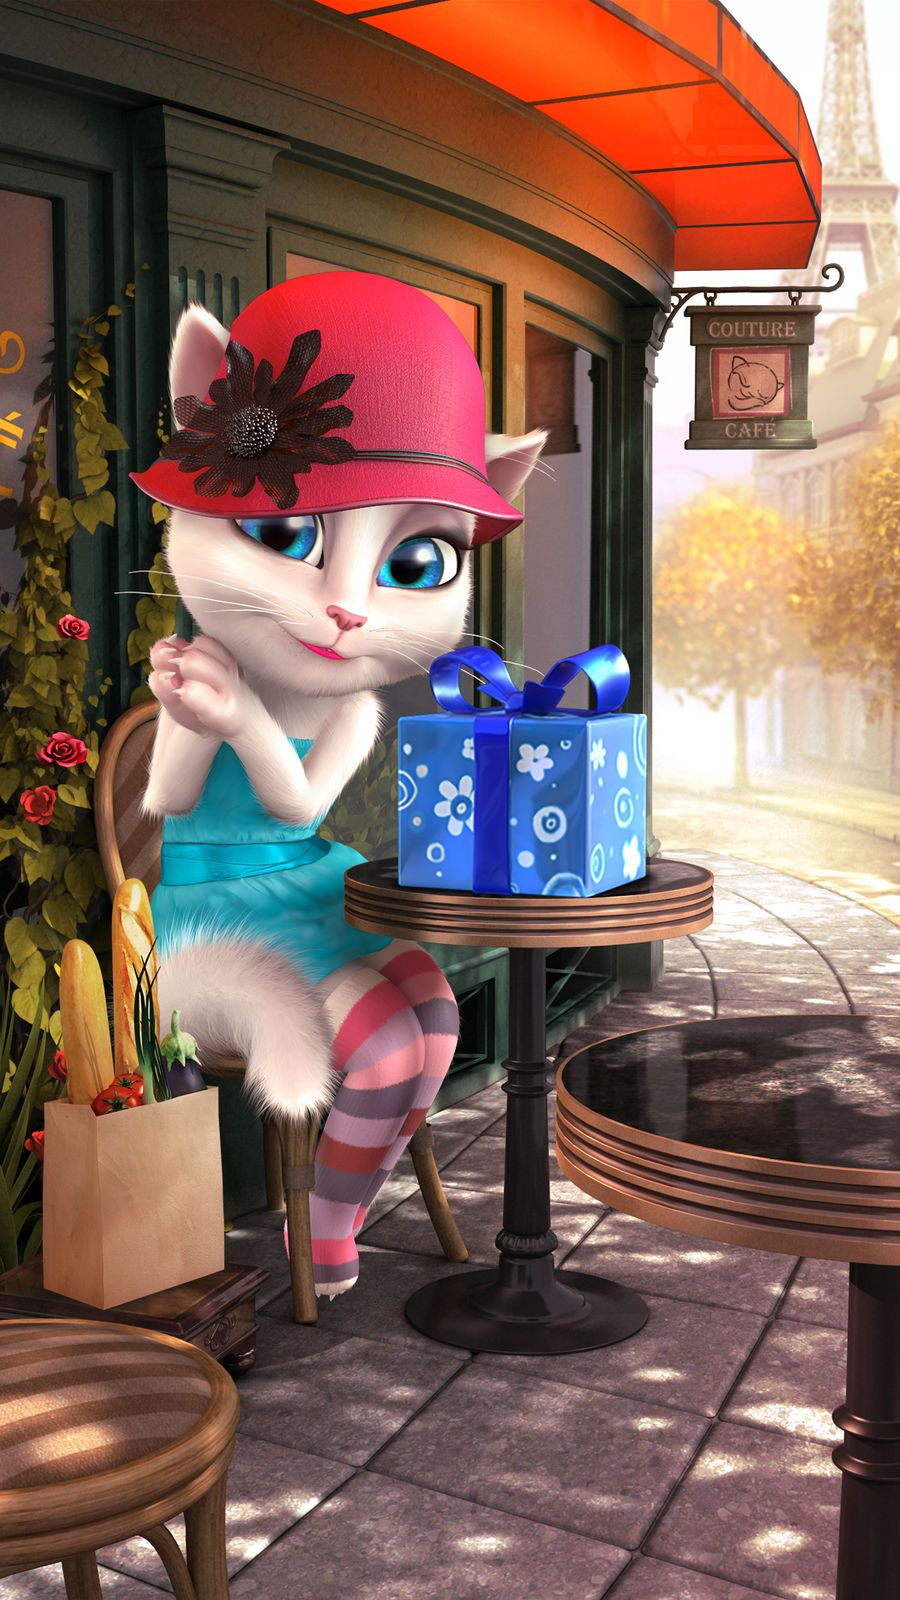 Talking Angela iosEntertainmentappapps Games for